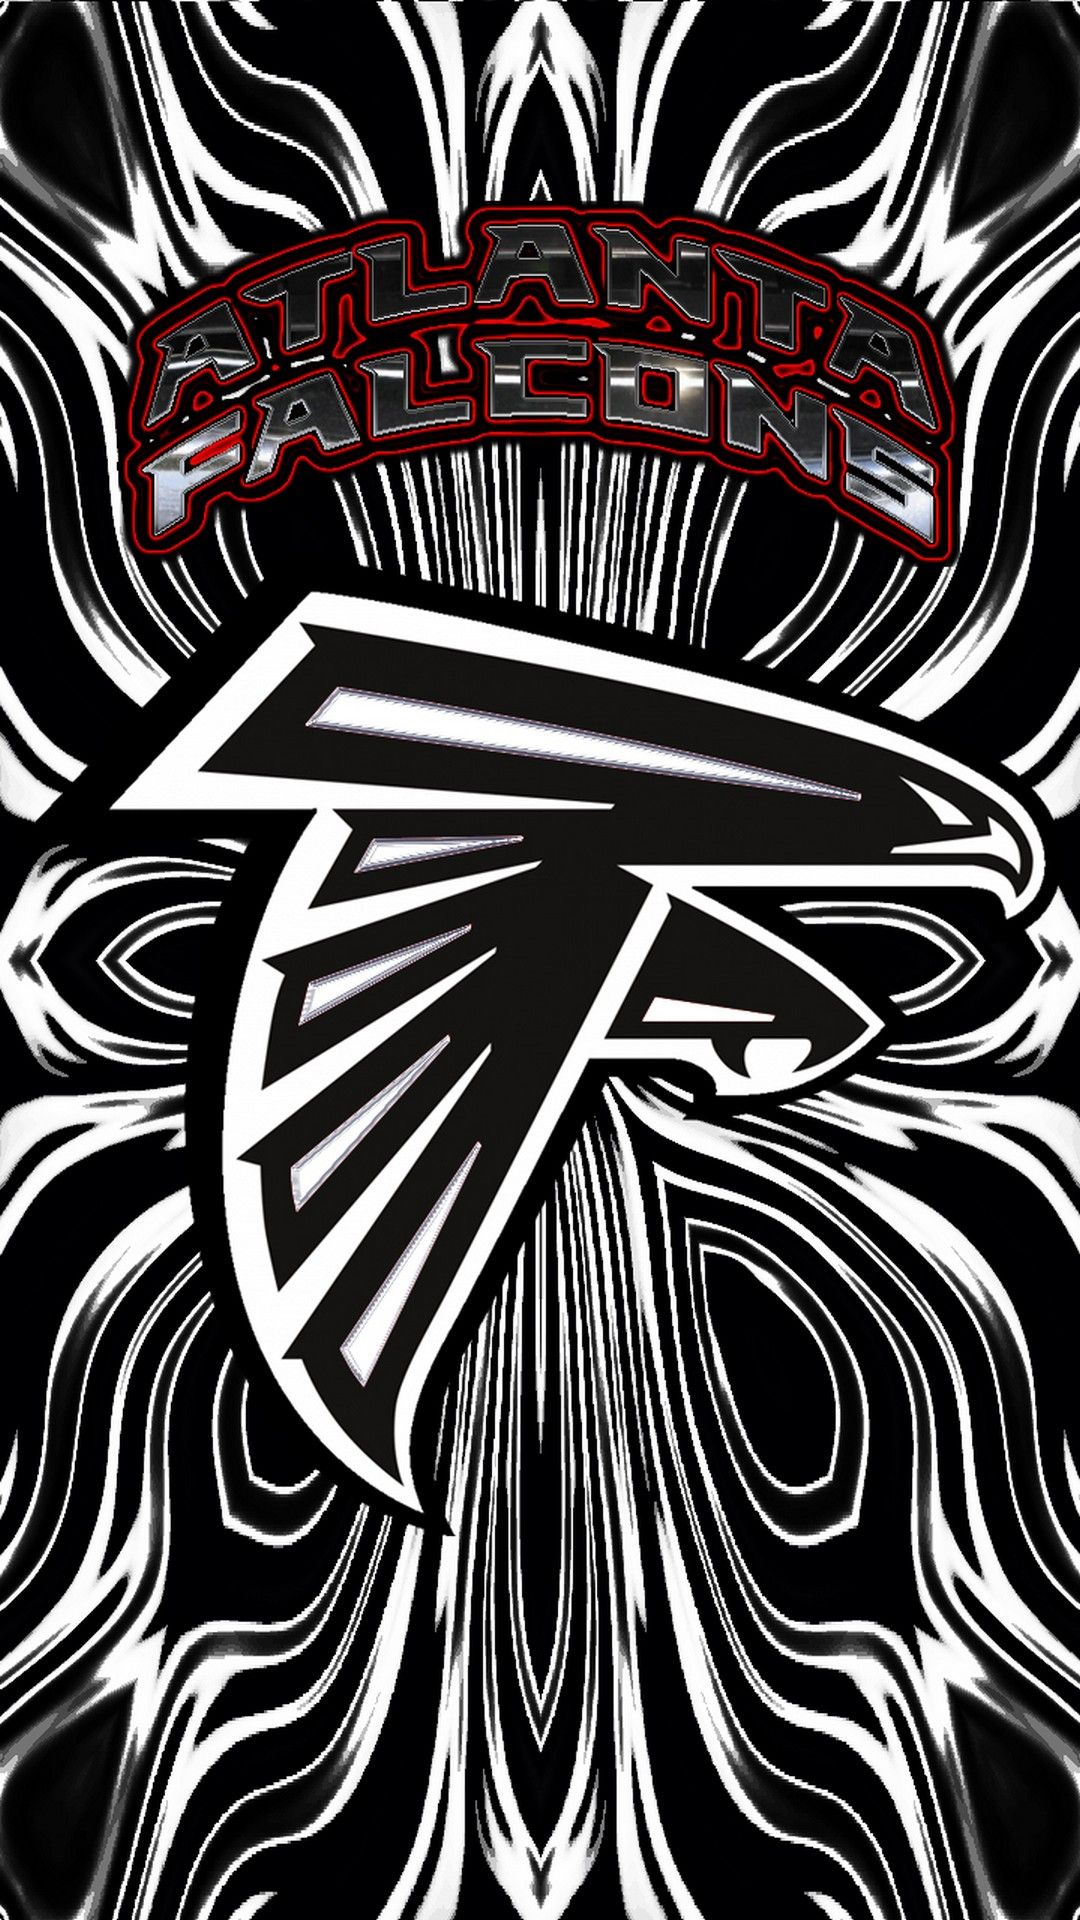 Atlanta Falcons Iphone X Wallpaper Is The Best High Definition Nfl Wallpaper In 2020 Enjoy And Set As Wallpa In 2020 Atlanta Falcons Wallpaper Atlanta Falcons Falcons